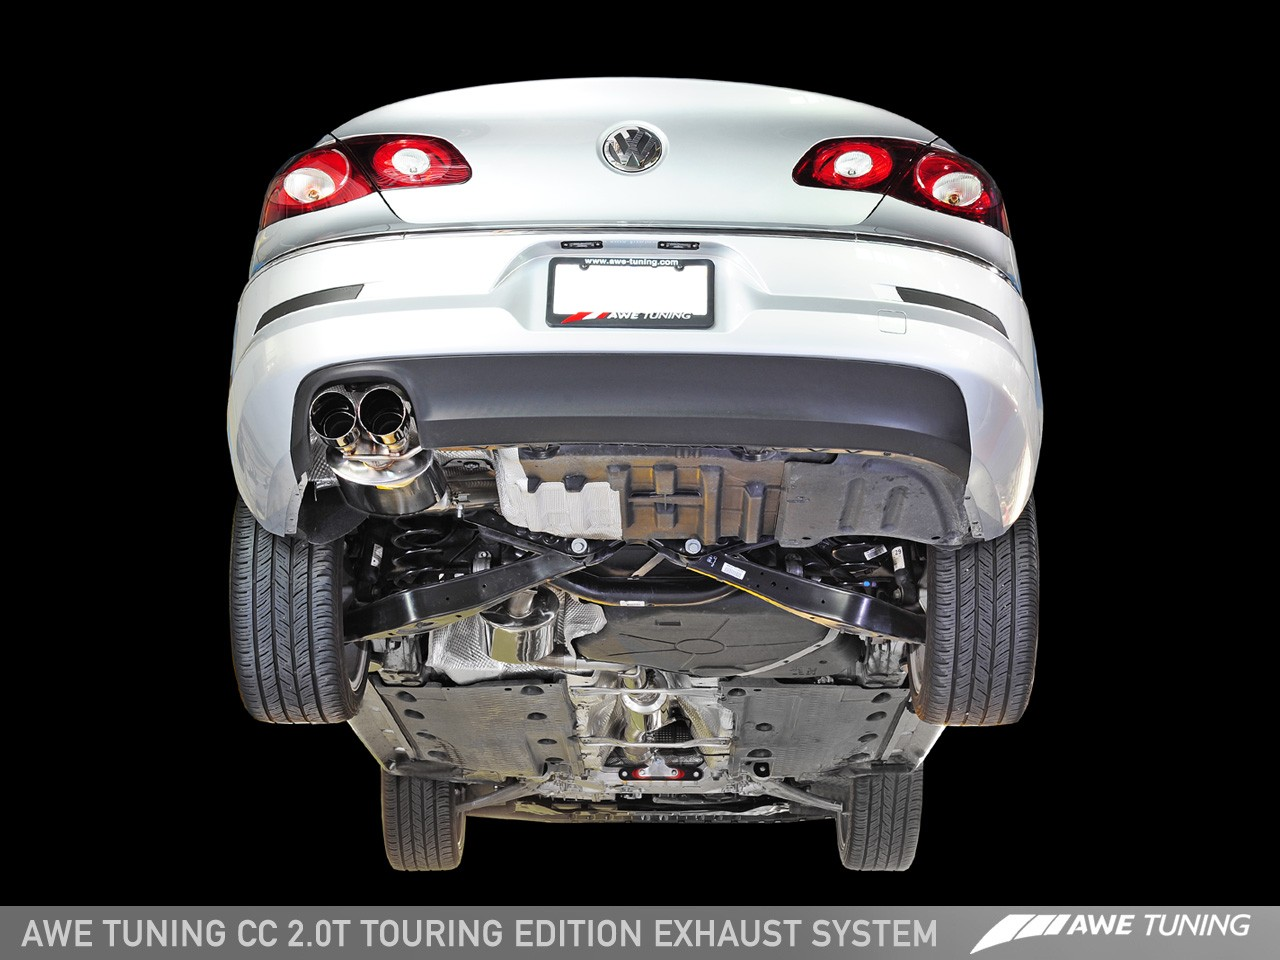 Awe Tuning Vw Cc 2 0t Touring Edition Exhaust System Awe